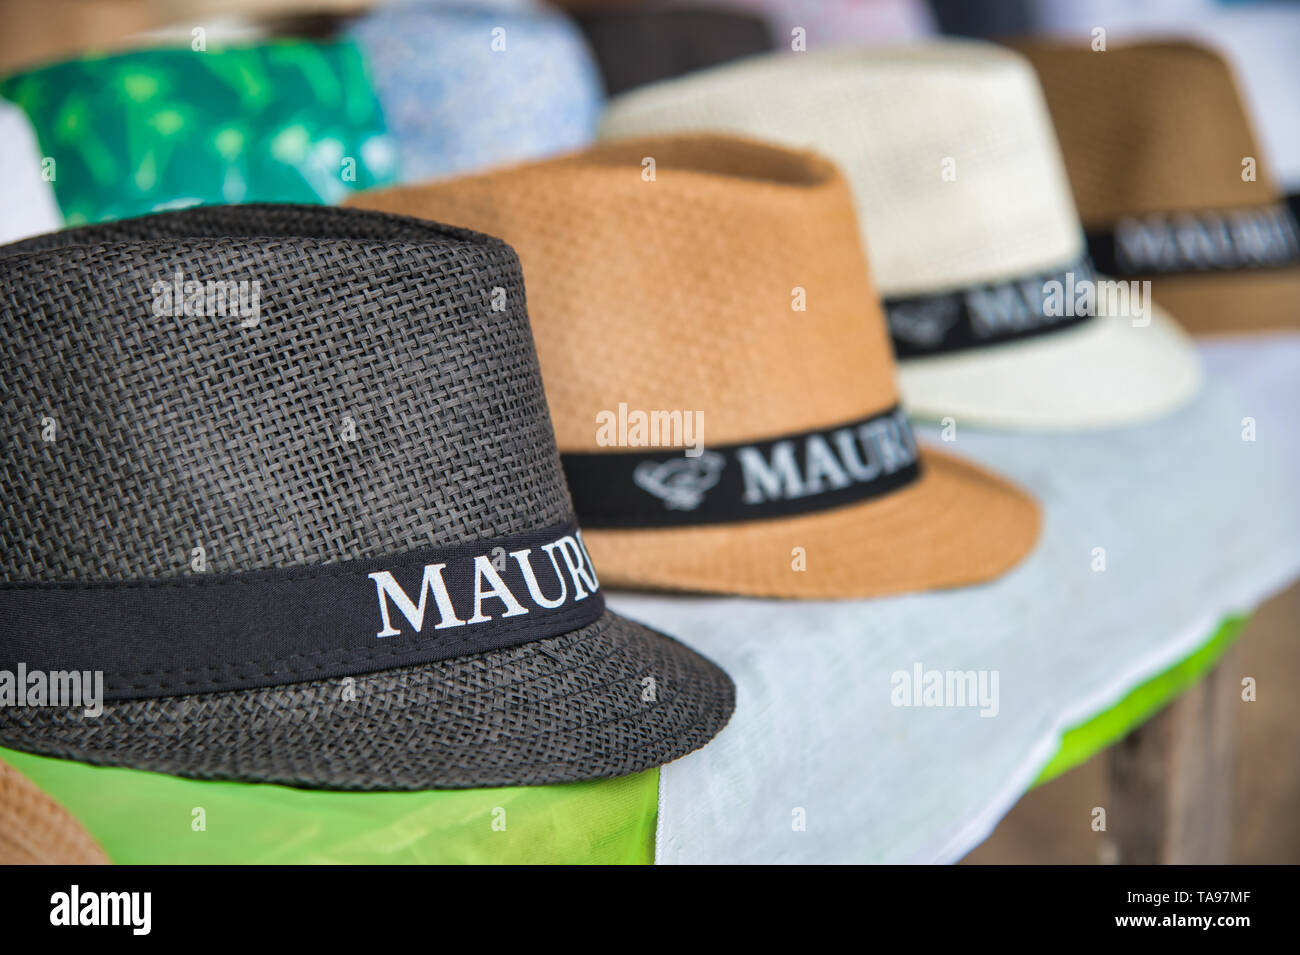 fa095d3b17b9ae MAURITIUS - MAY 2, 2019: Straw hats on sale in a tourist shop. Mauritius is  a famous tourist attraction for sea holidays.